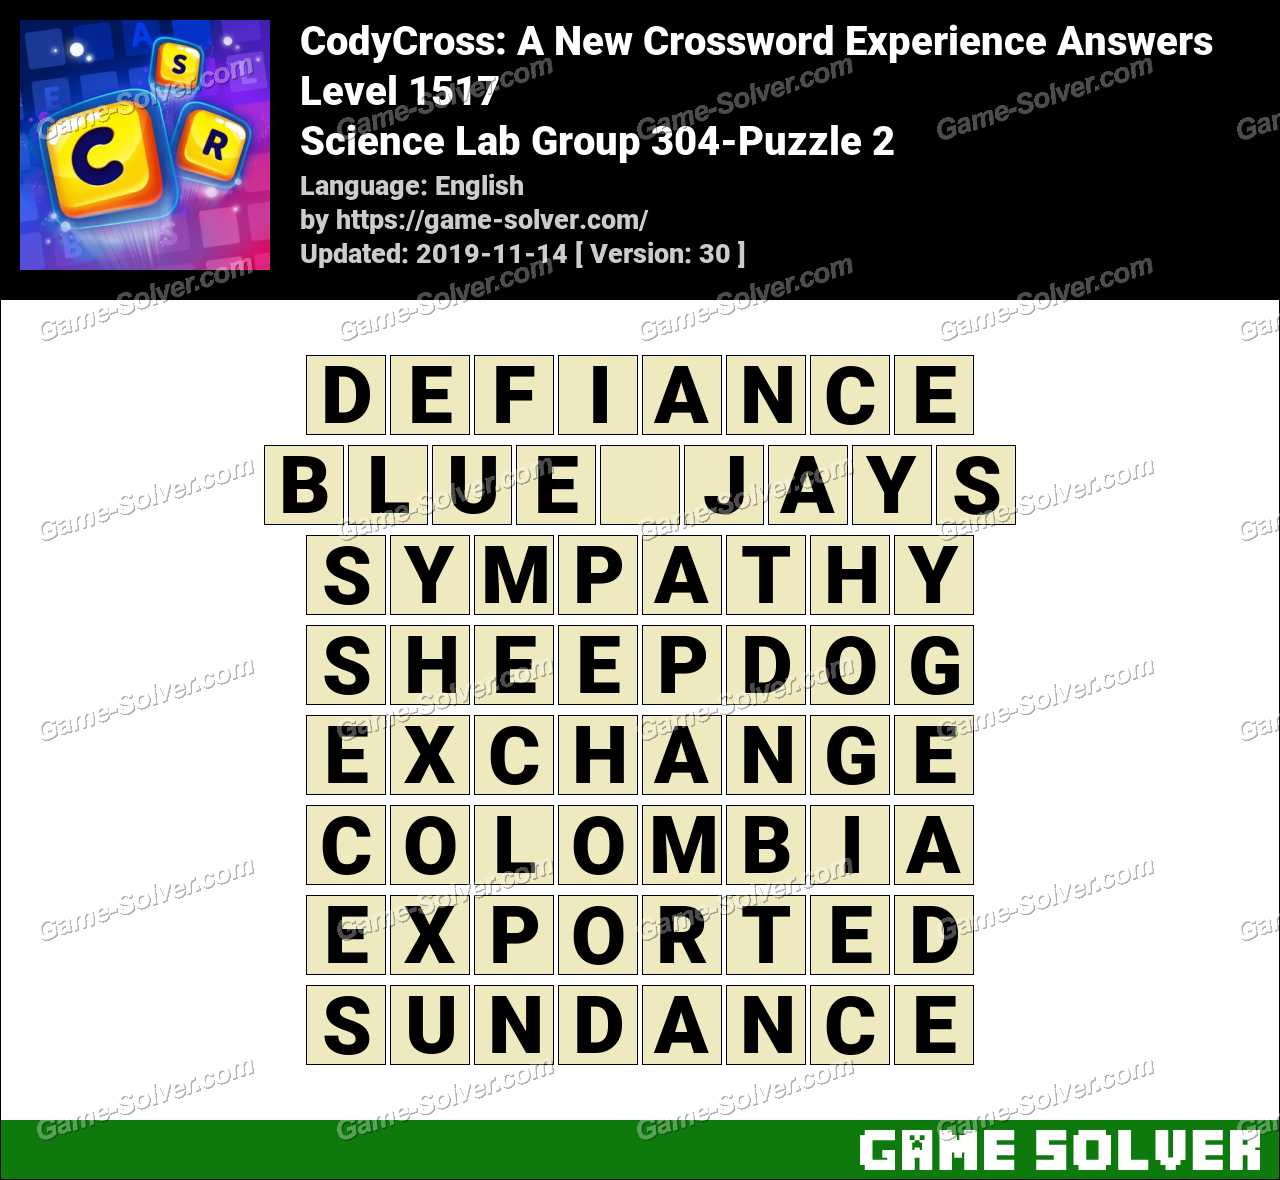 CodyCross Science Lab Group 304-Puzzle 2 Answers